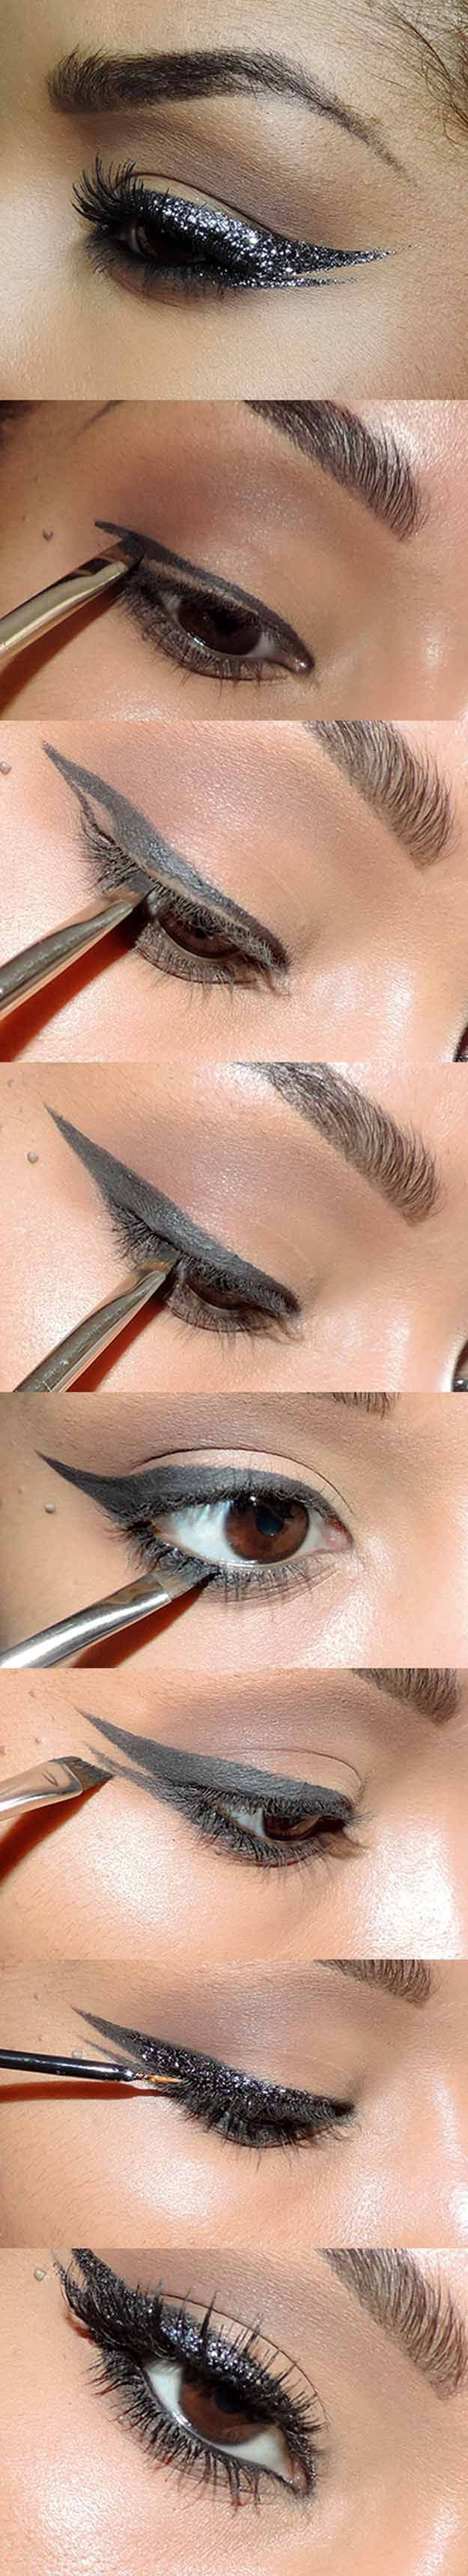 35 Glitter Eye Makeup Tutorials - Get the Look: New Year's Eve Glitter Cat Eye Tutorial - Step By Step DIY Glitter Eye Make Up Tutorials that WIll Make Yours Eyes Sparkle - Silver and Gold Linda Hallberg Looks, Awesome Eyeshadow Products, Urban Decay and Looks for Your Eyebrows to Make You Look Like a Beauty - https://thegoddess.com/glitter-eye-makeup-tutorials